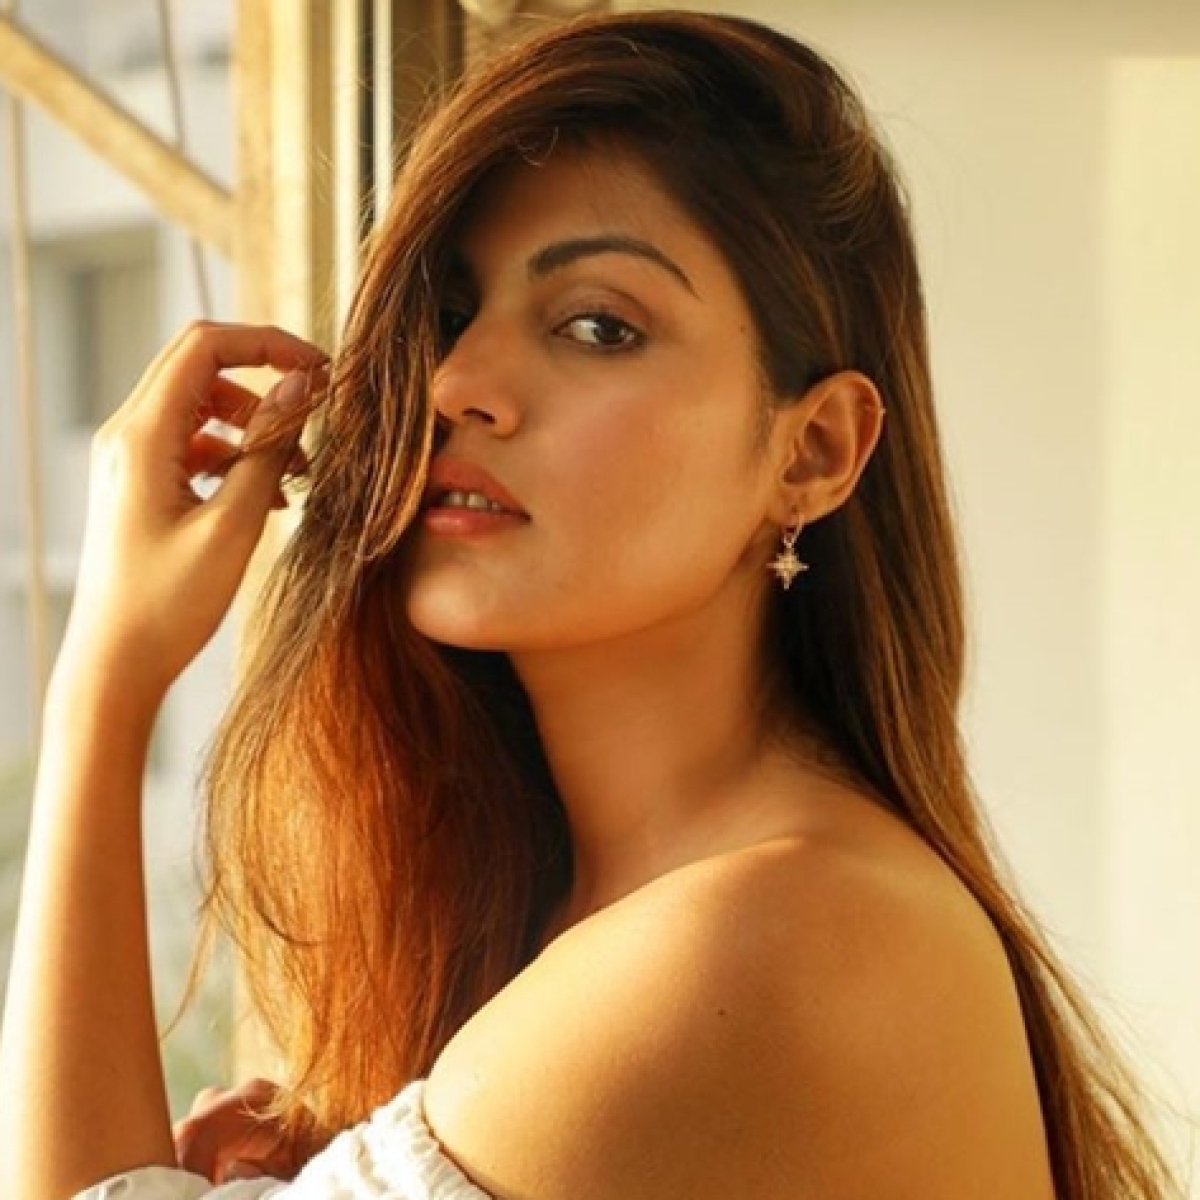 'Enough is enough': Rhea Chakraborty reports rape and death threat she received post Sushant Singh Rajput's death